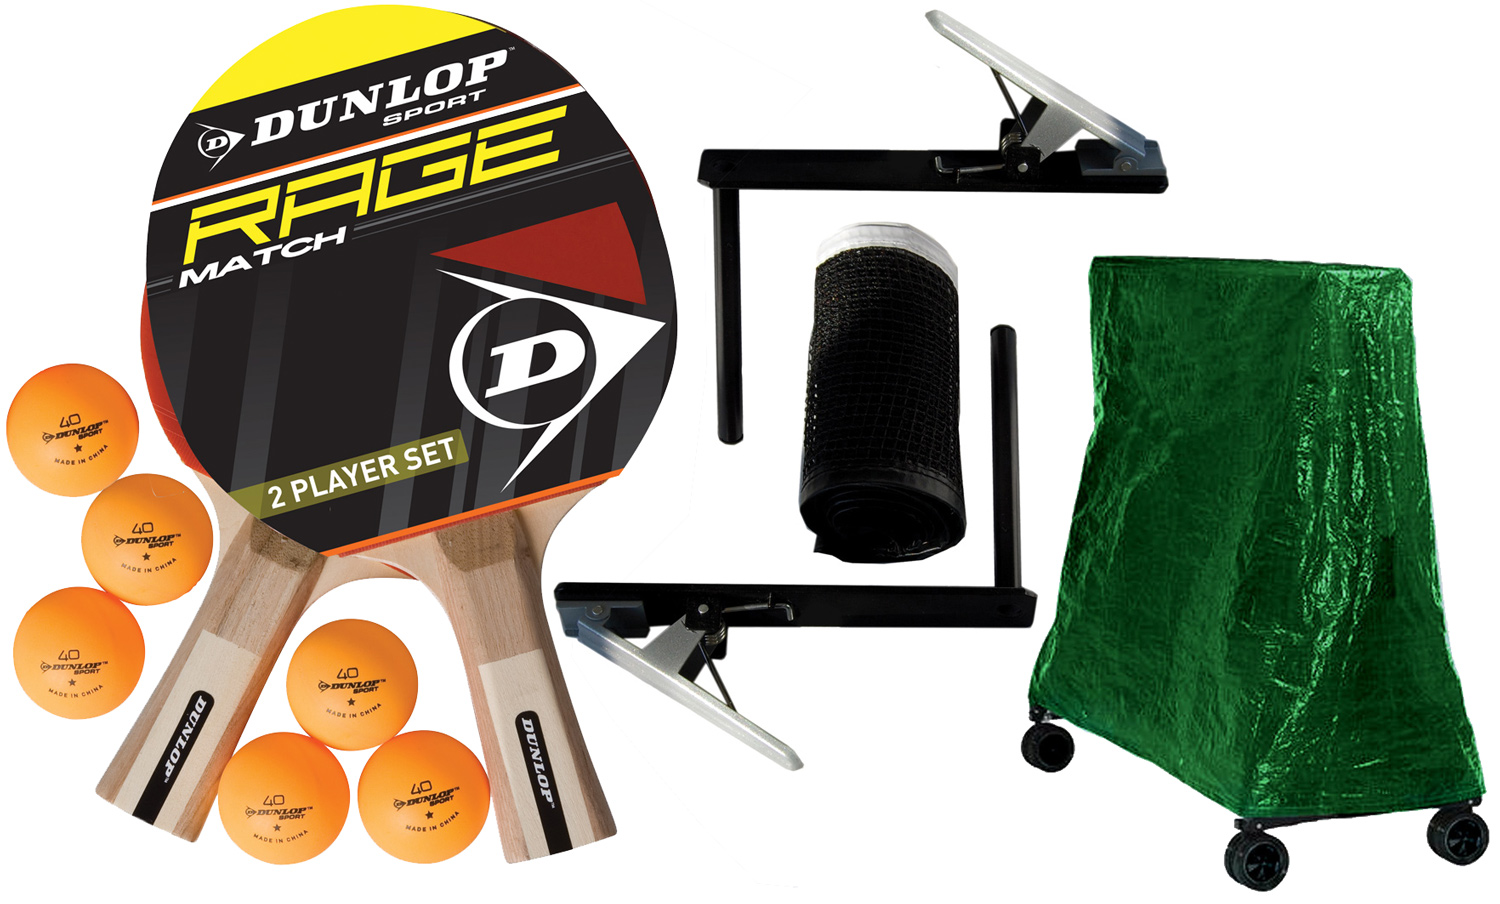 Accessories supplied with the Dunlop outdoor range of table tennis tables.